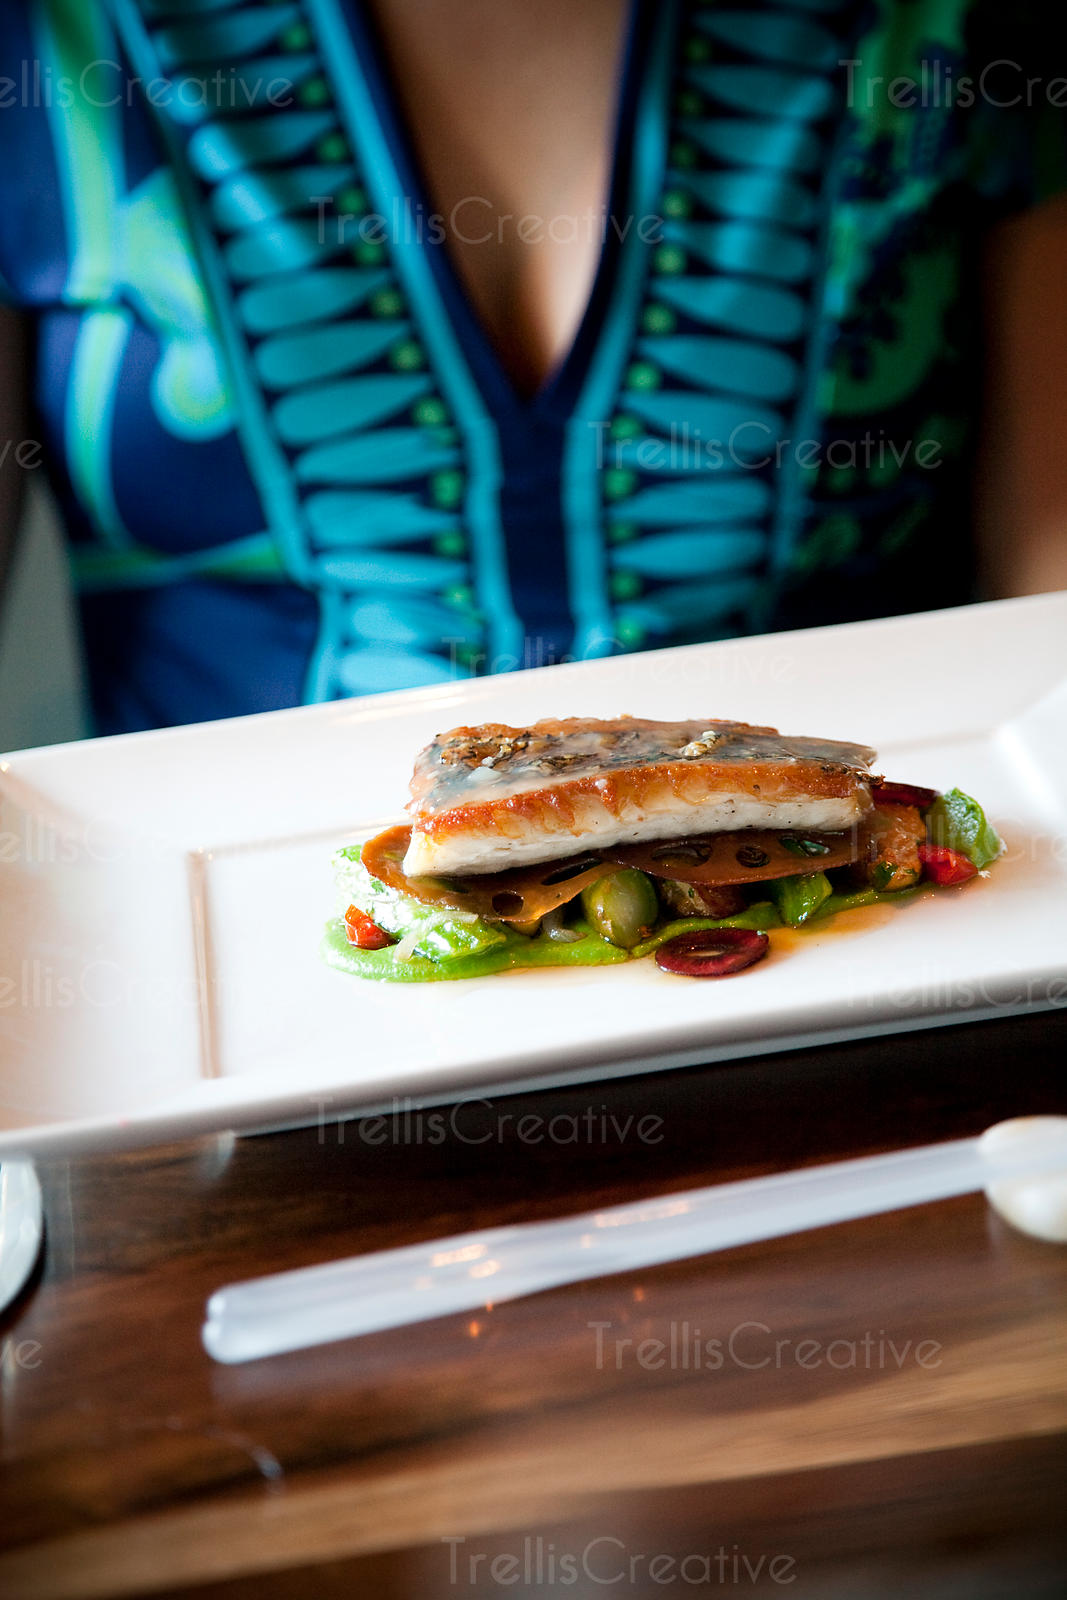 Black sea bass with pea and wasabi puree